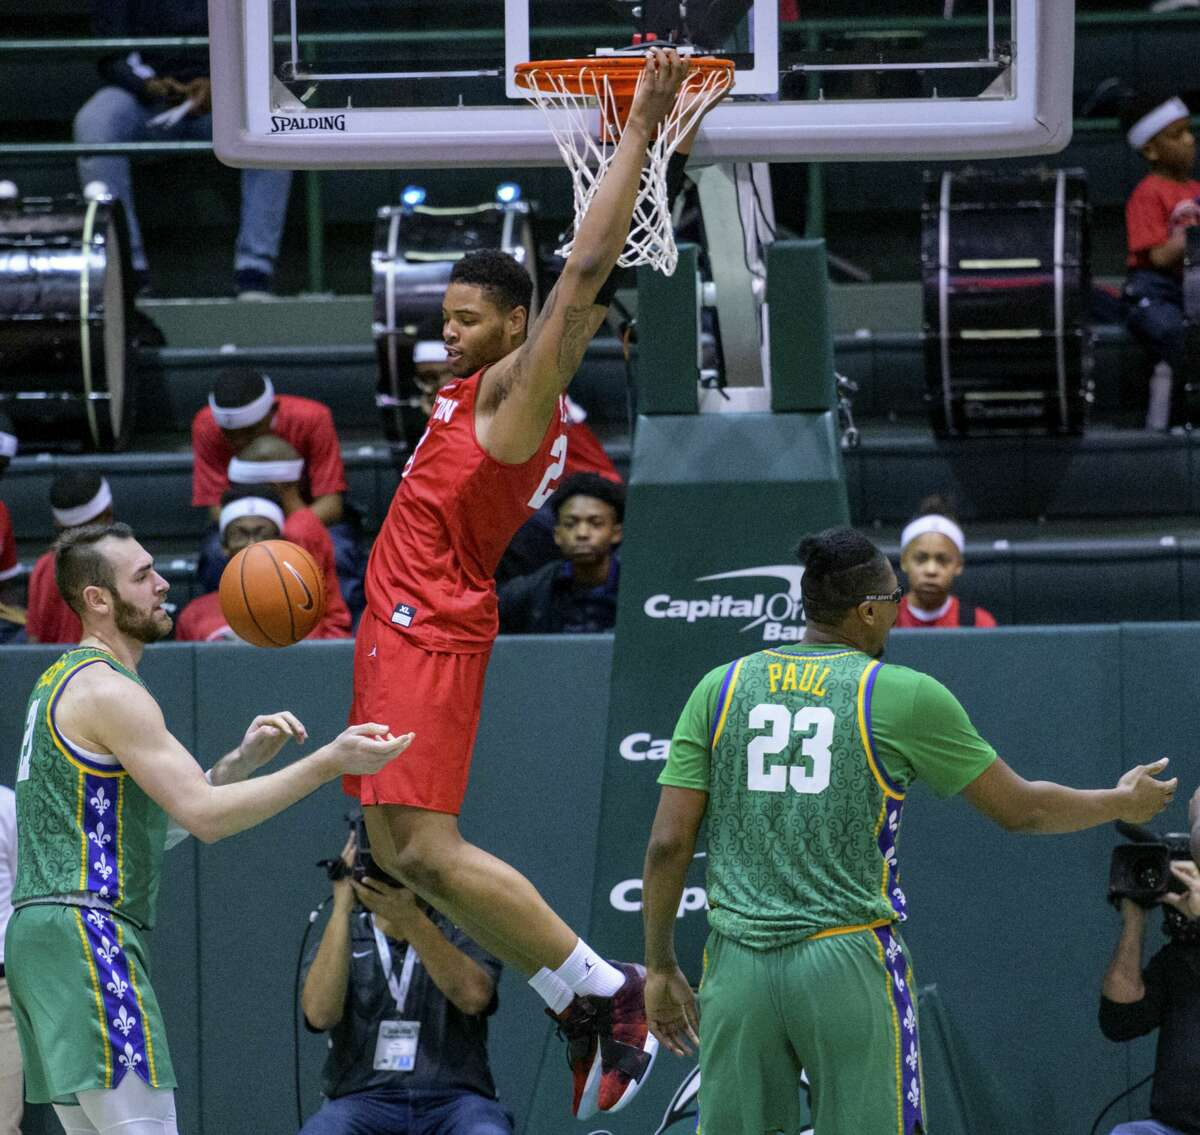 Houston forward Breaon Brady (24) dunks agains Tulane forward Samir Sehic (21) and Tulane forward Blake Paul (23) in the second half of an NCAA college basketball game in New Orleans, Sunday, Feb. 17, 2019. Houston won, 85-50. (AP Photo/Matthew Hinton)